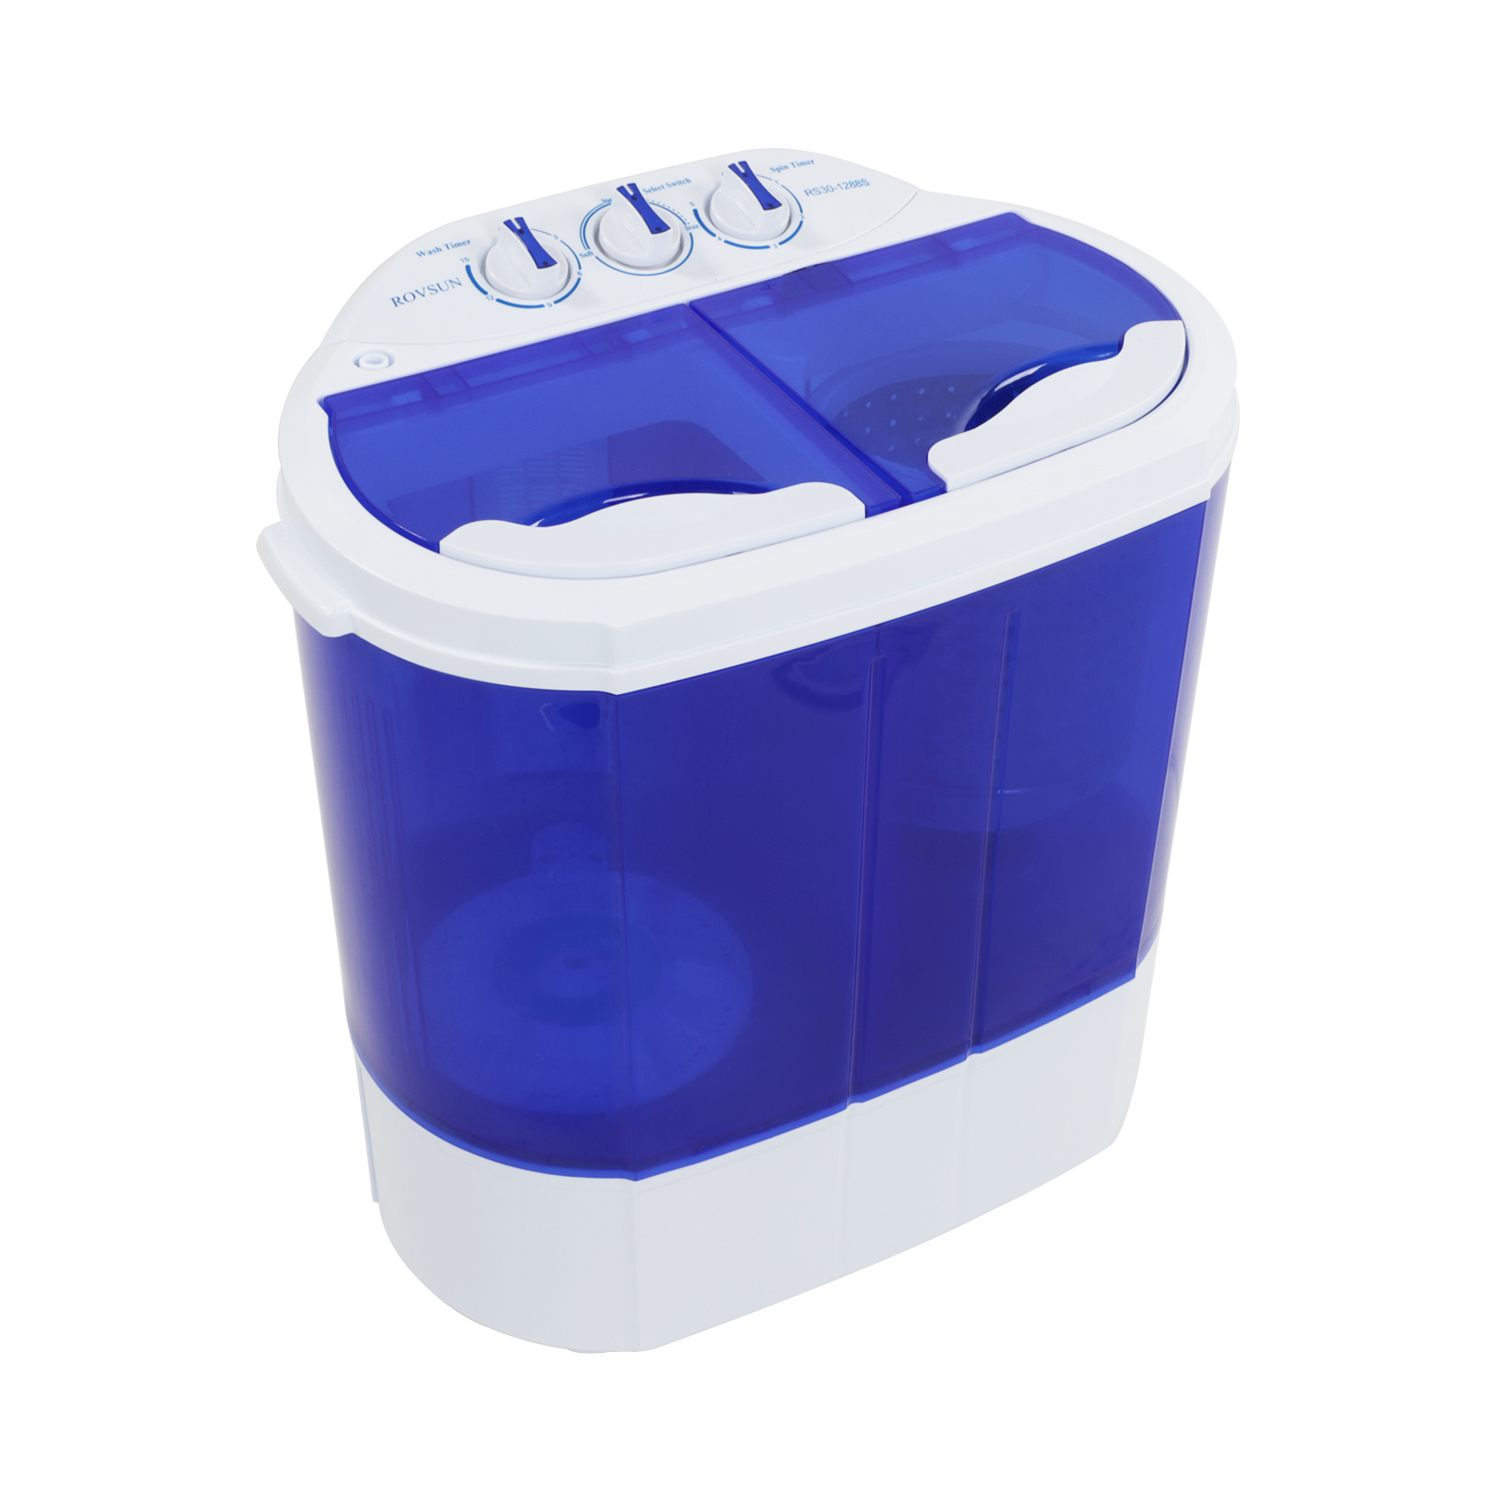 Ktaxon Compact Mini Twin Tub Washing Machine and Spin Cycle w/ Hose,Wash 5.6LBS+Spin 4.4LBS Capacity